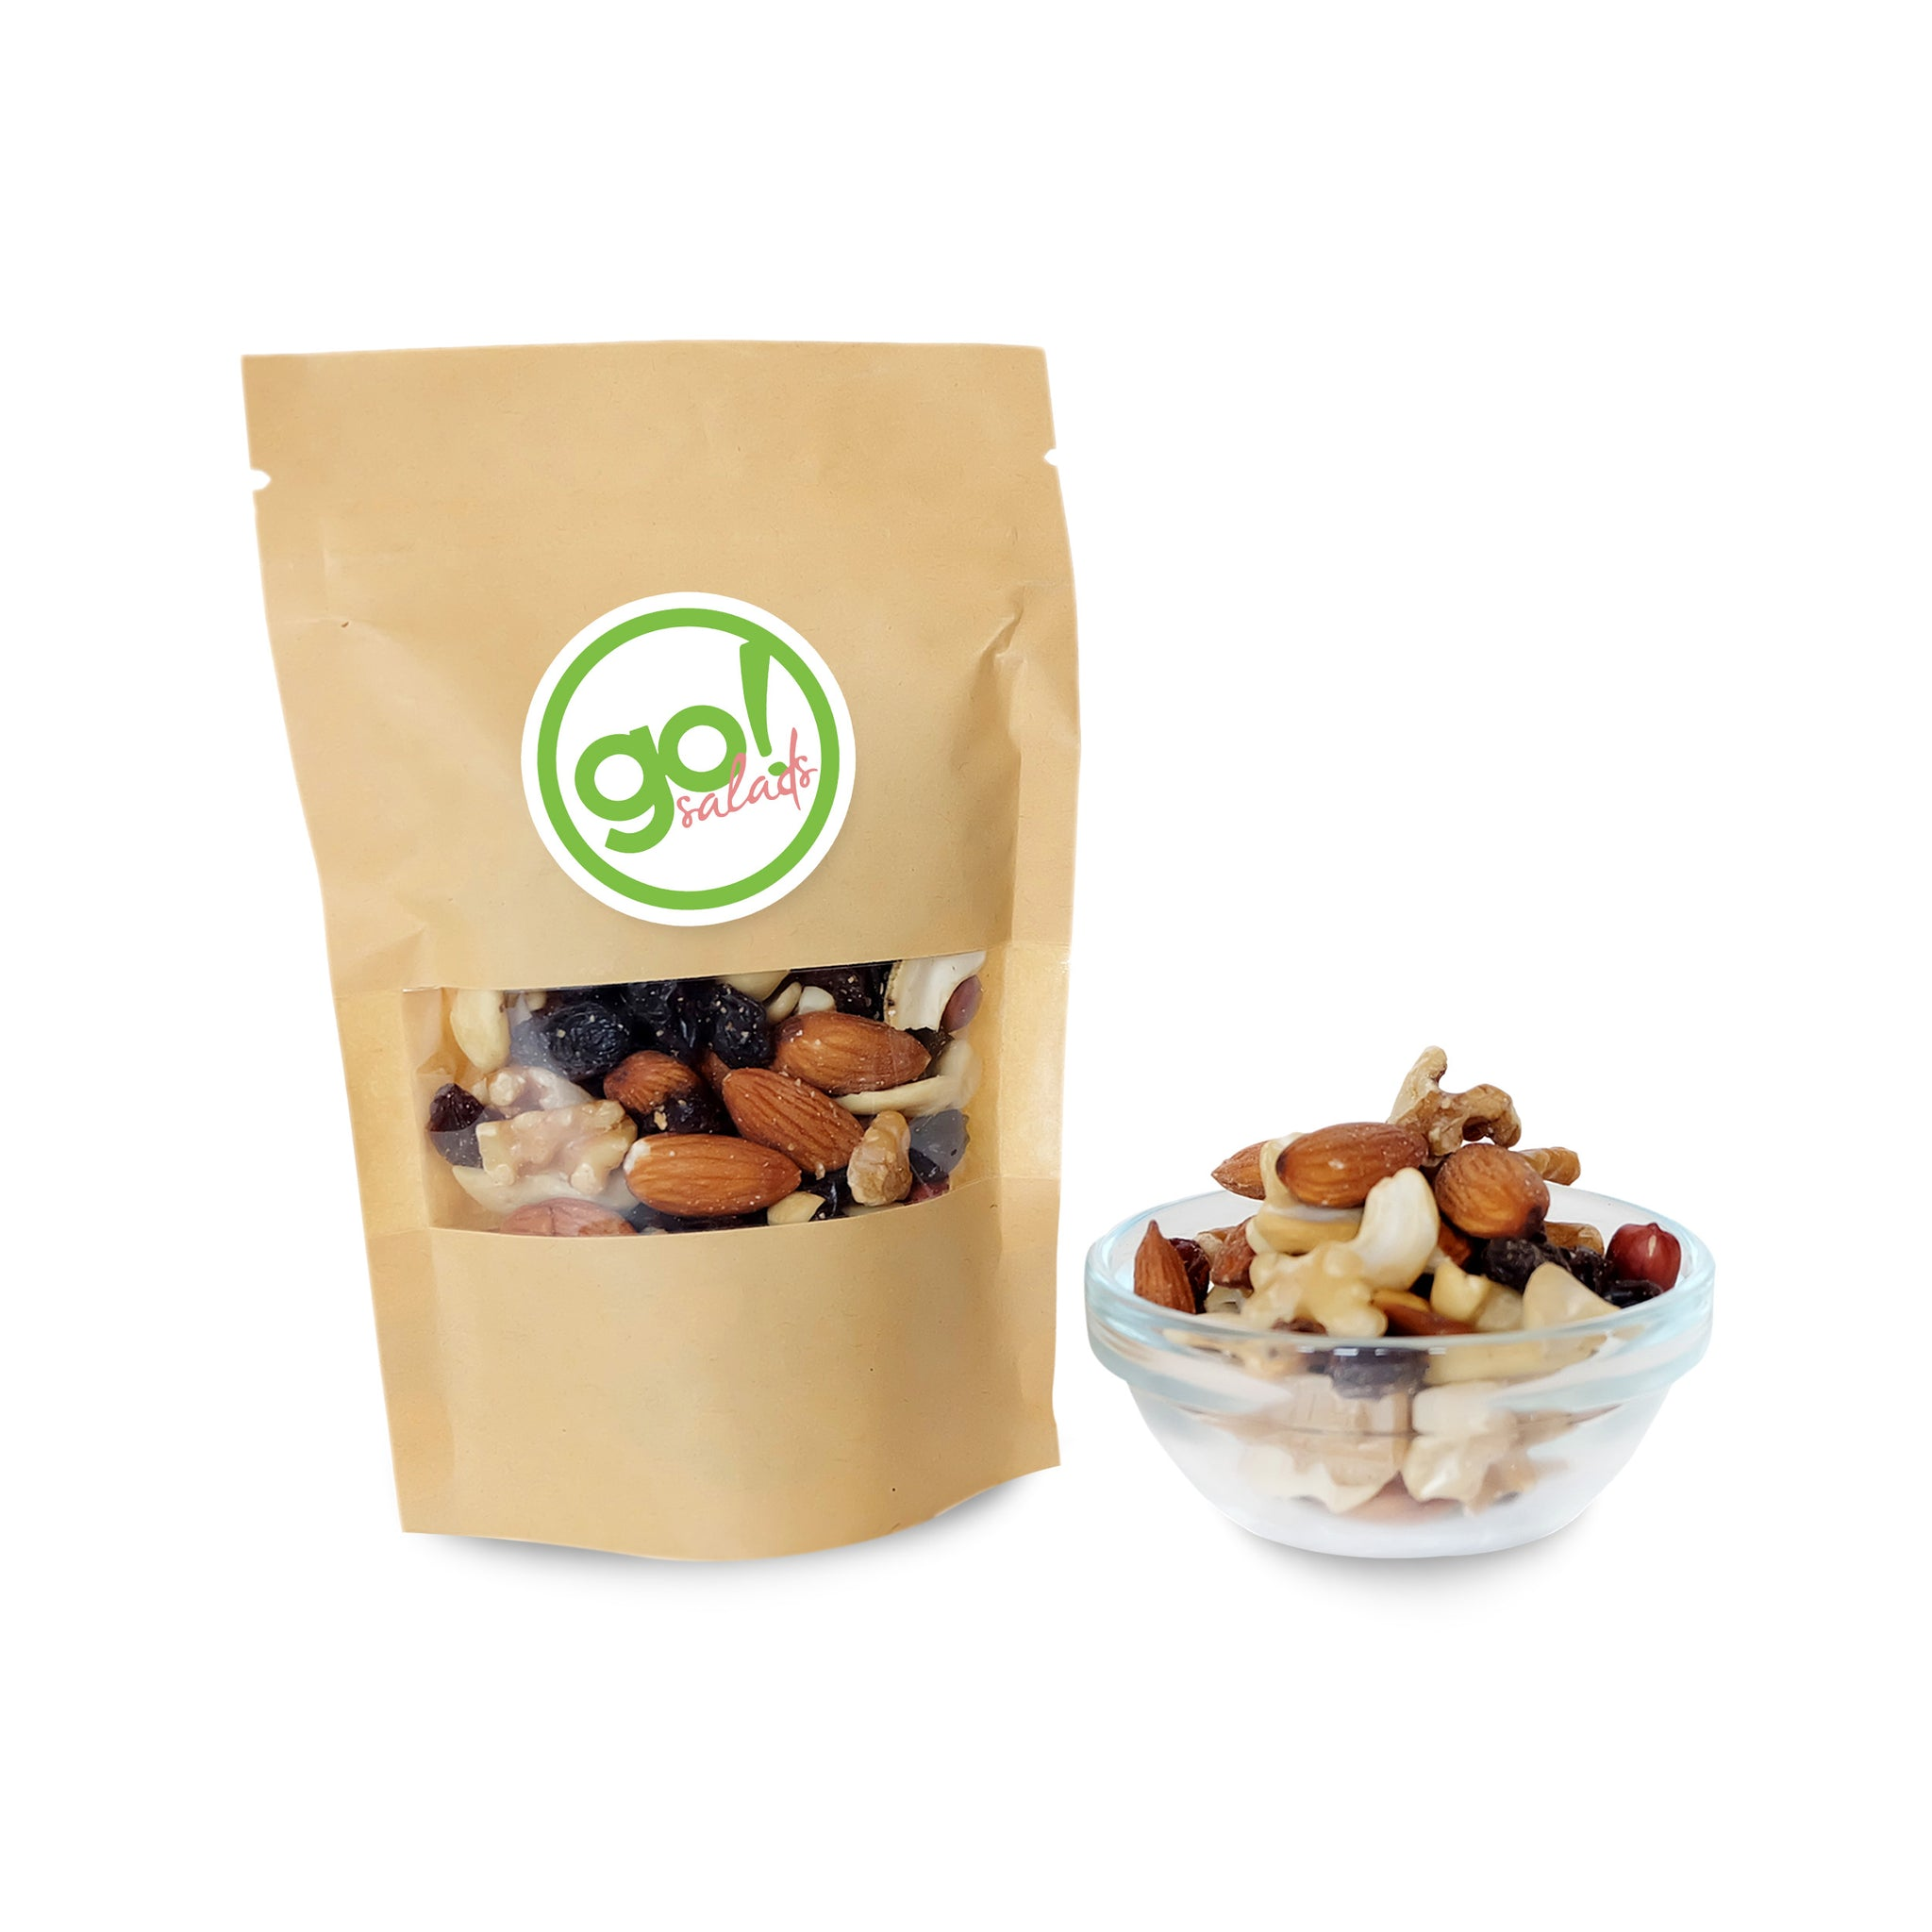 Trail Mix - Go! Salads Grocer